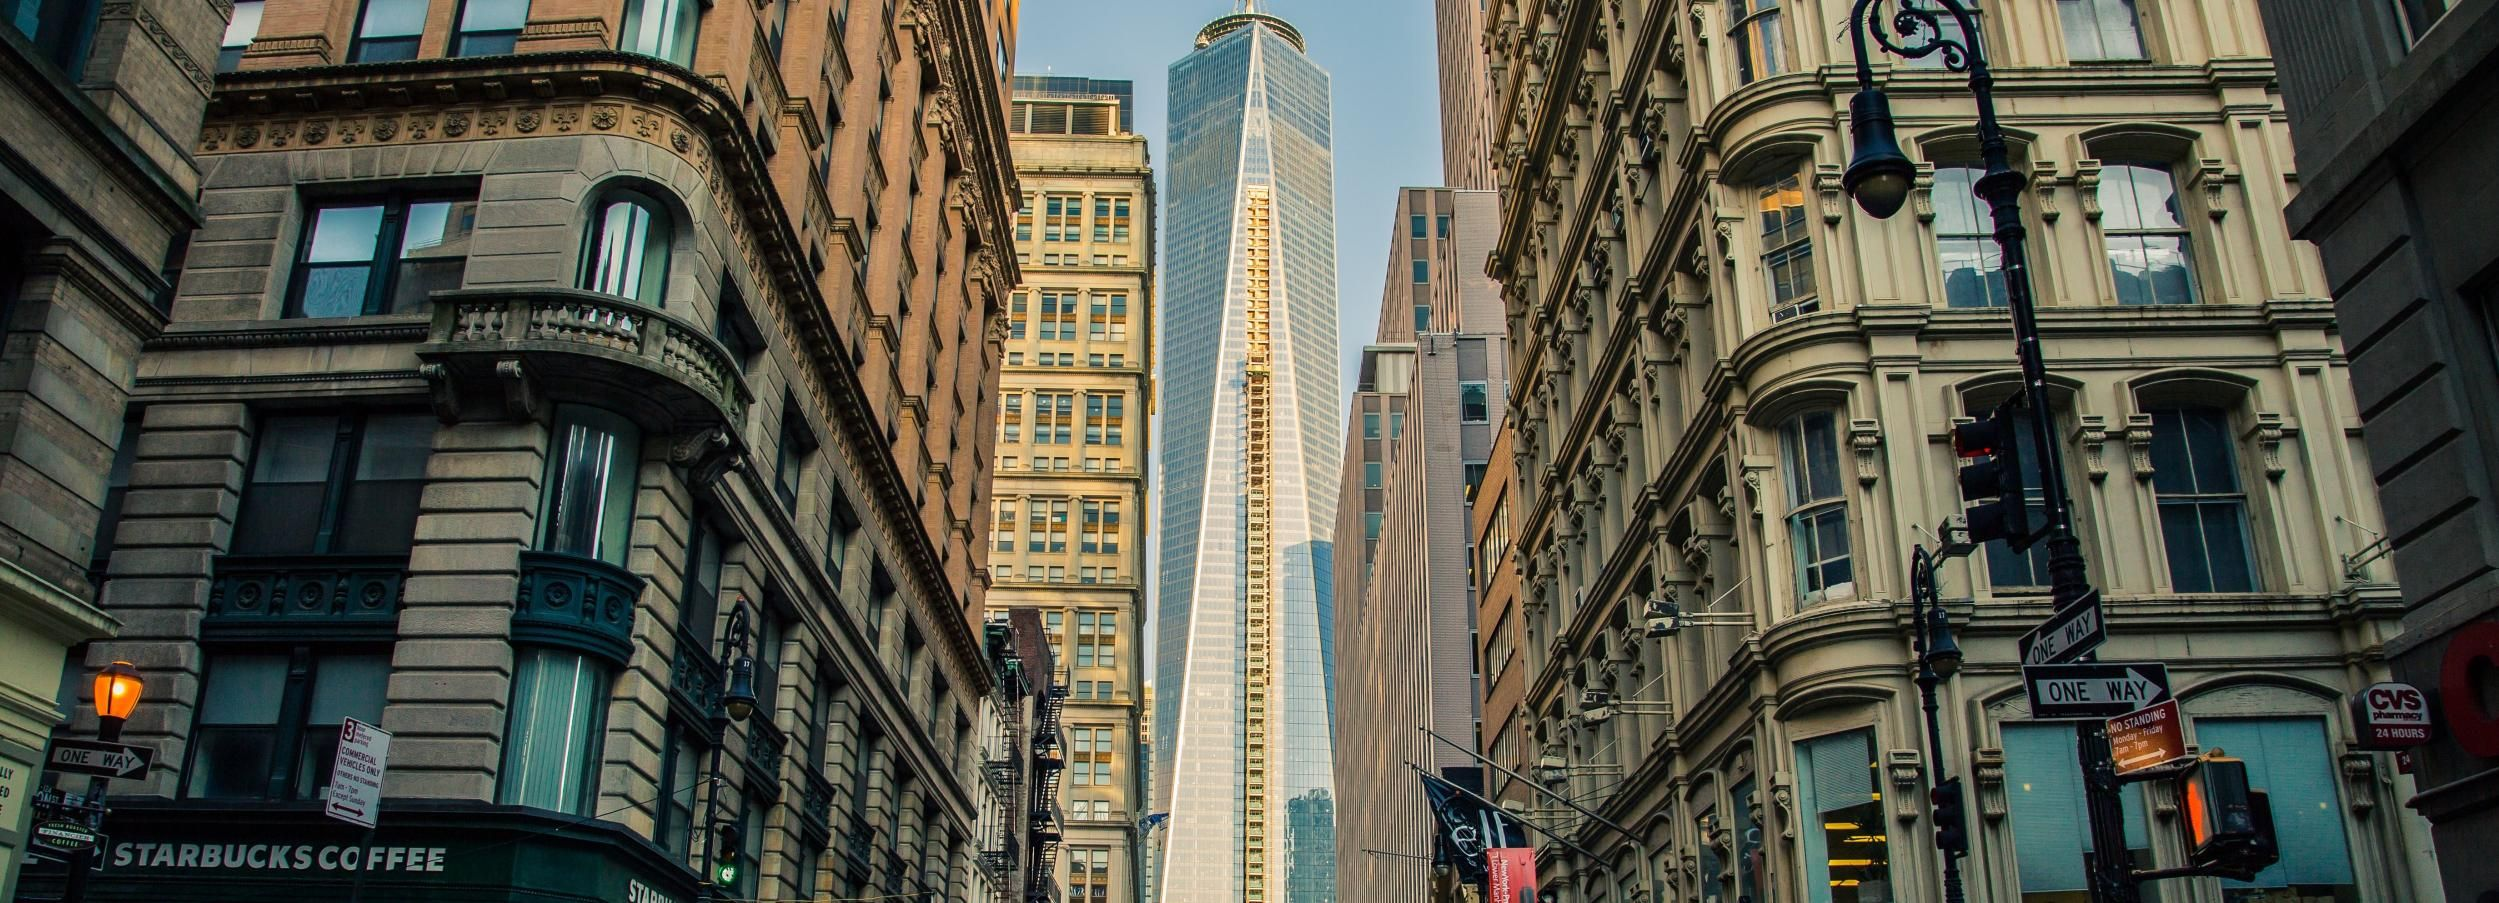 NYC Luxury Bus Tour and One World Observatory